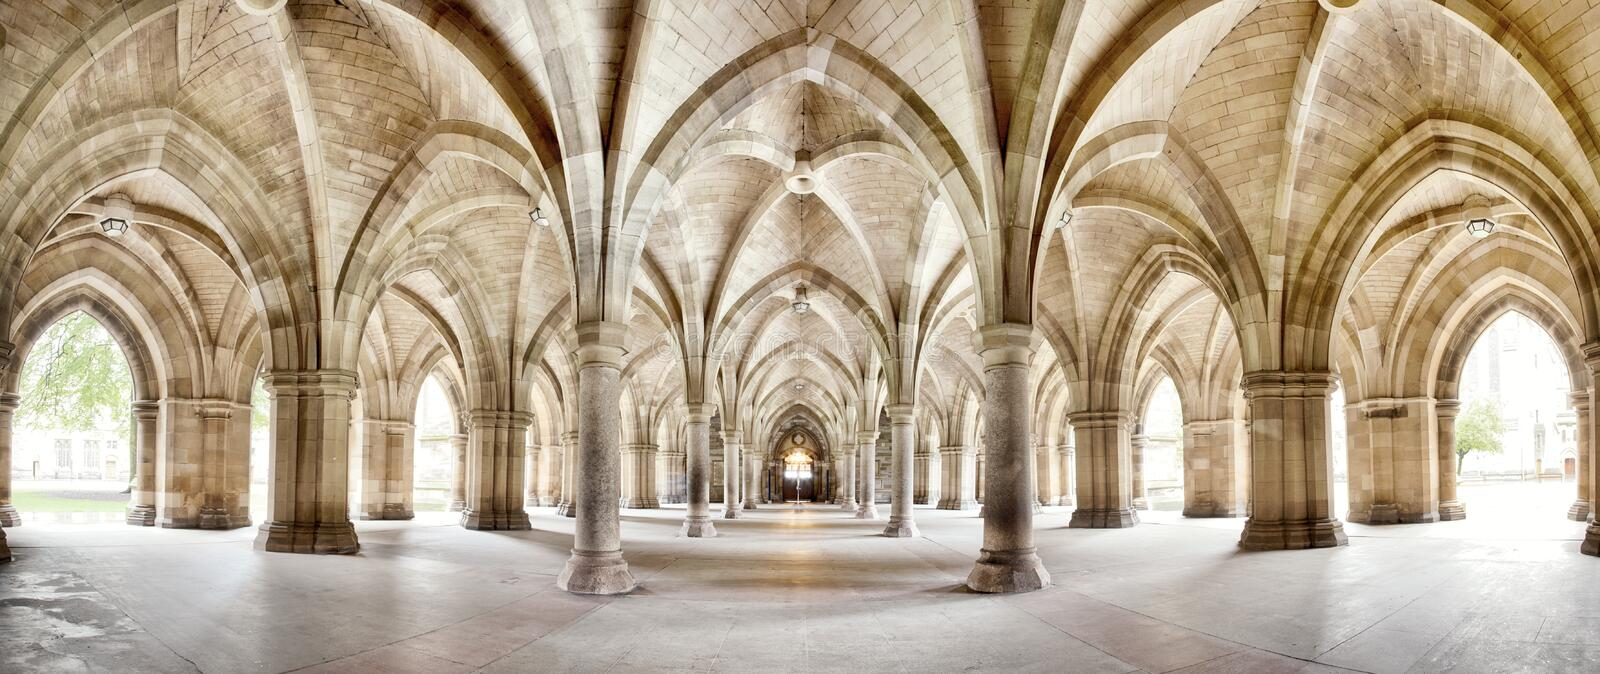 Glasgow University Cloisters panorama. The historic Cloisters of Glasgow University. Panorama of the exterior walkway. Image taken from a public position stock photo